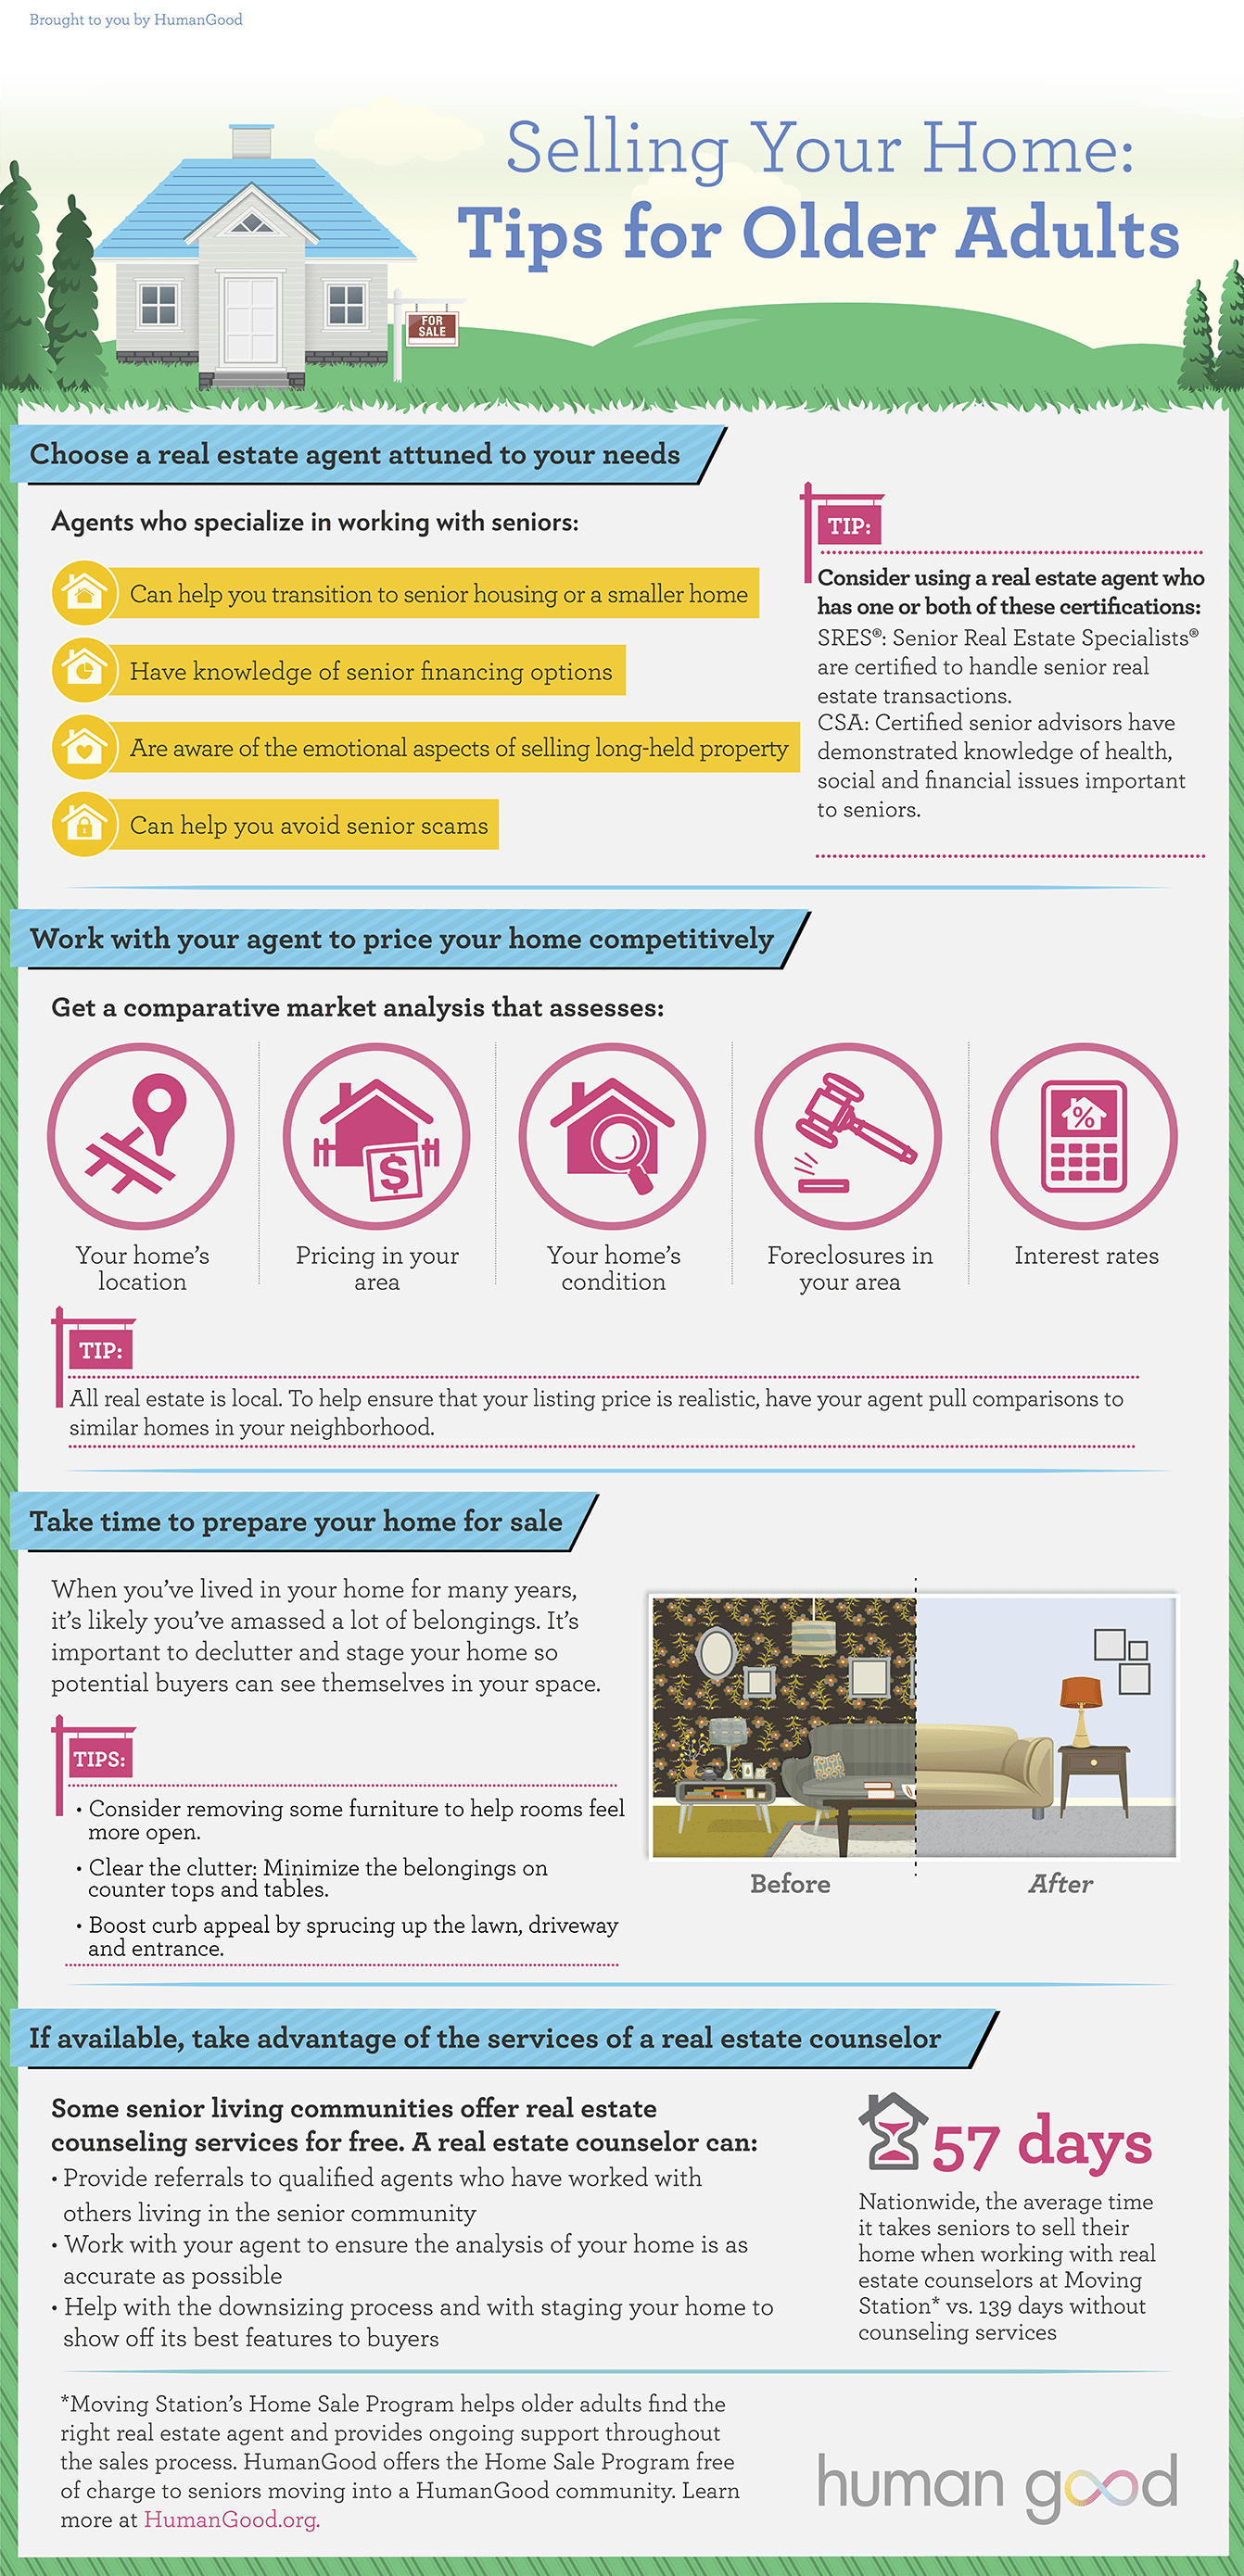 Selling Your Home Tips for Older Adults_HumanGood